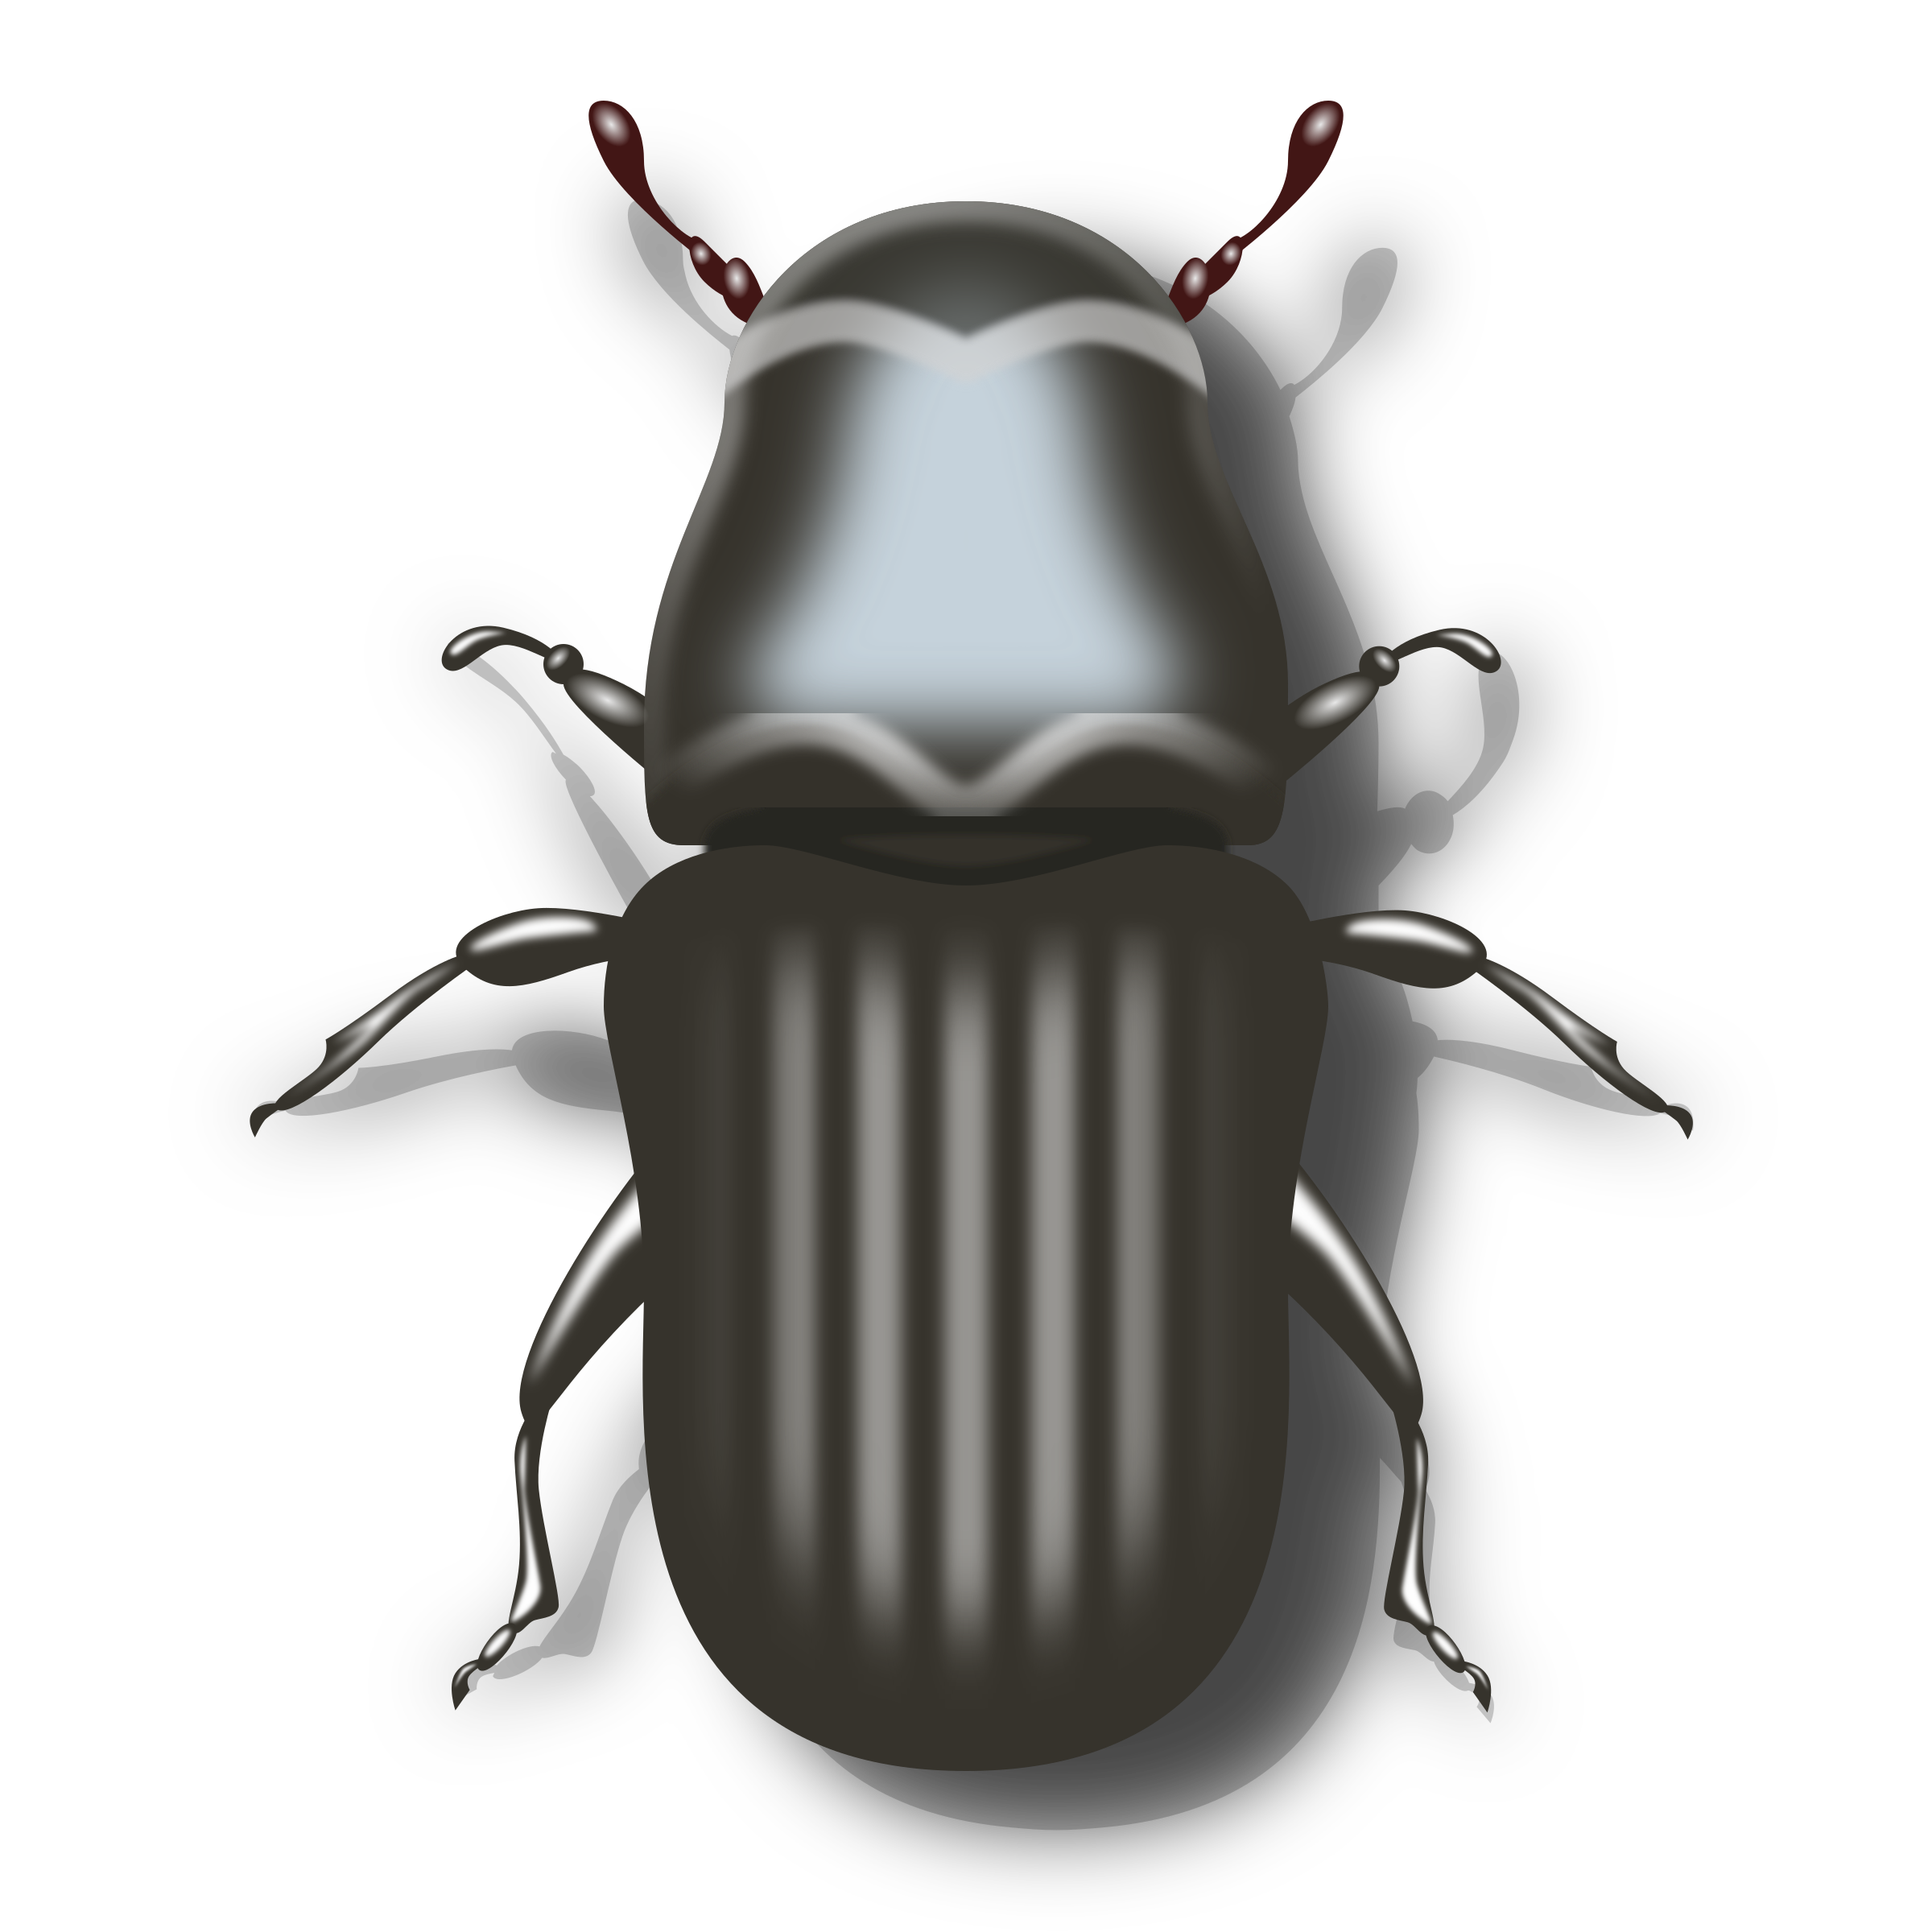 png royalty free library Bugs clipart darkling beetle. Pine big image png.